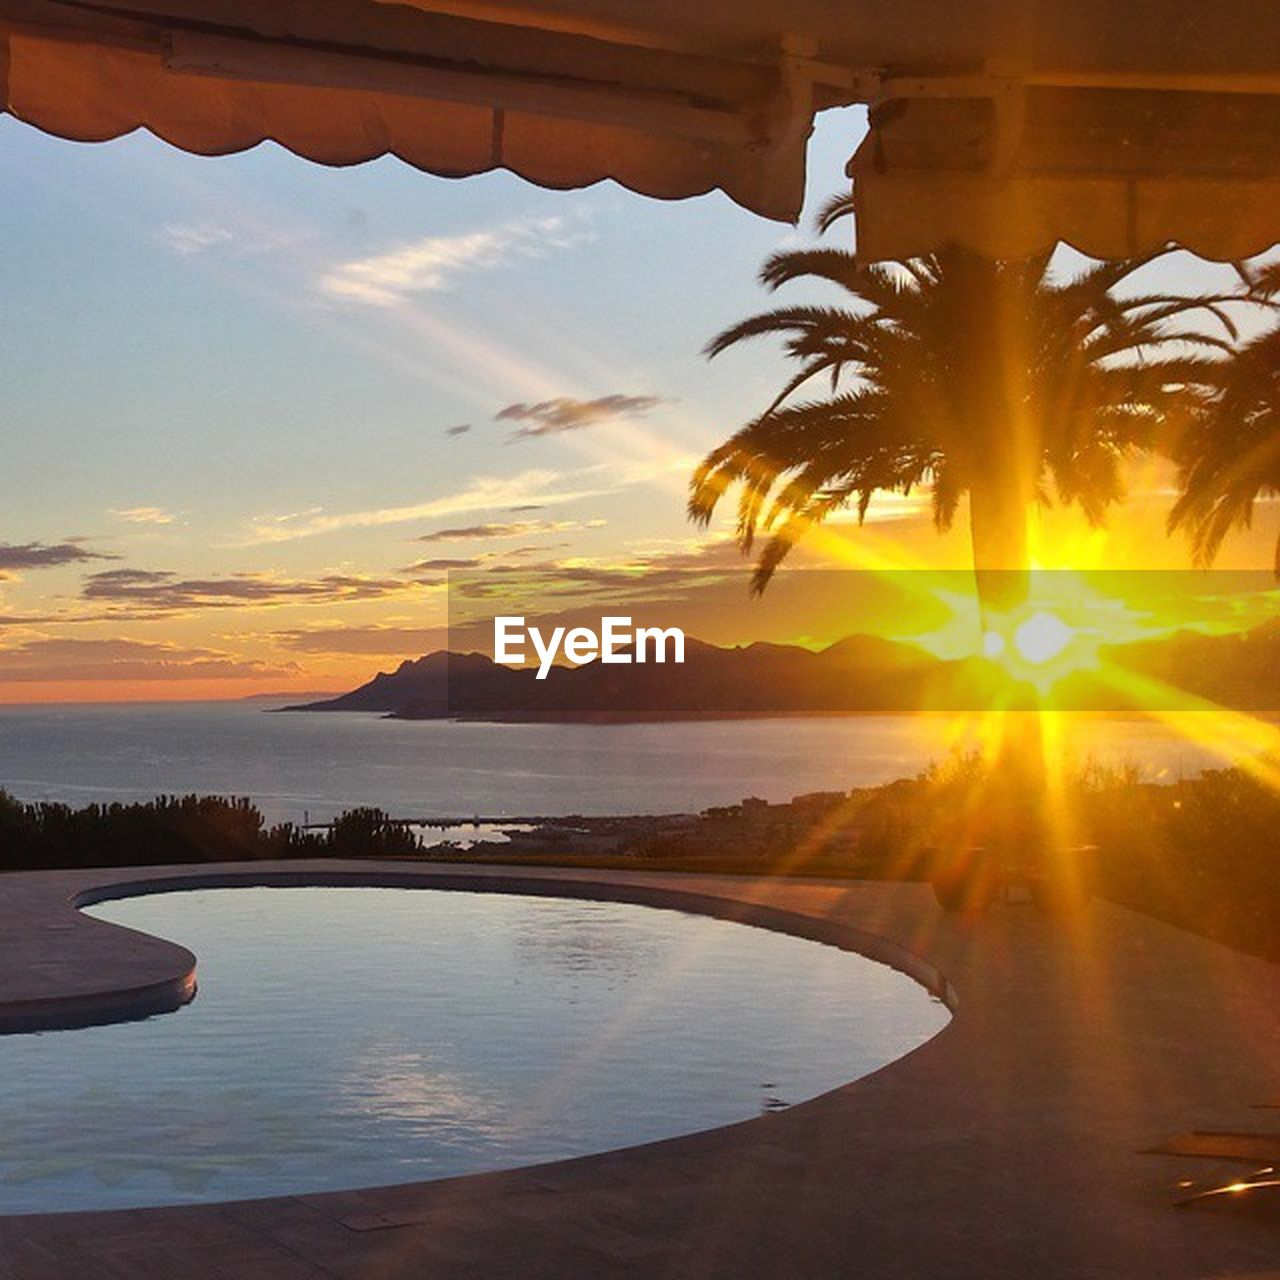 sunset, water, sky, beauty in nature, scenics - nature, tranquil scene, tree, palm tree, reflection, nature, tranquility, no people, cloud - sky, sea, orange color, tropical climate, sun, non-urban scene, idyllic, swimming pool, lens flare